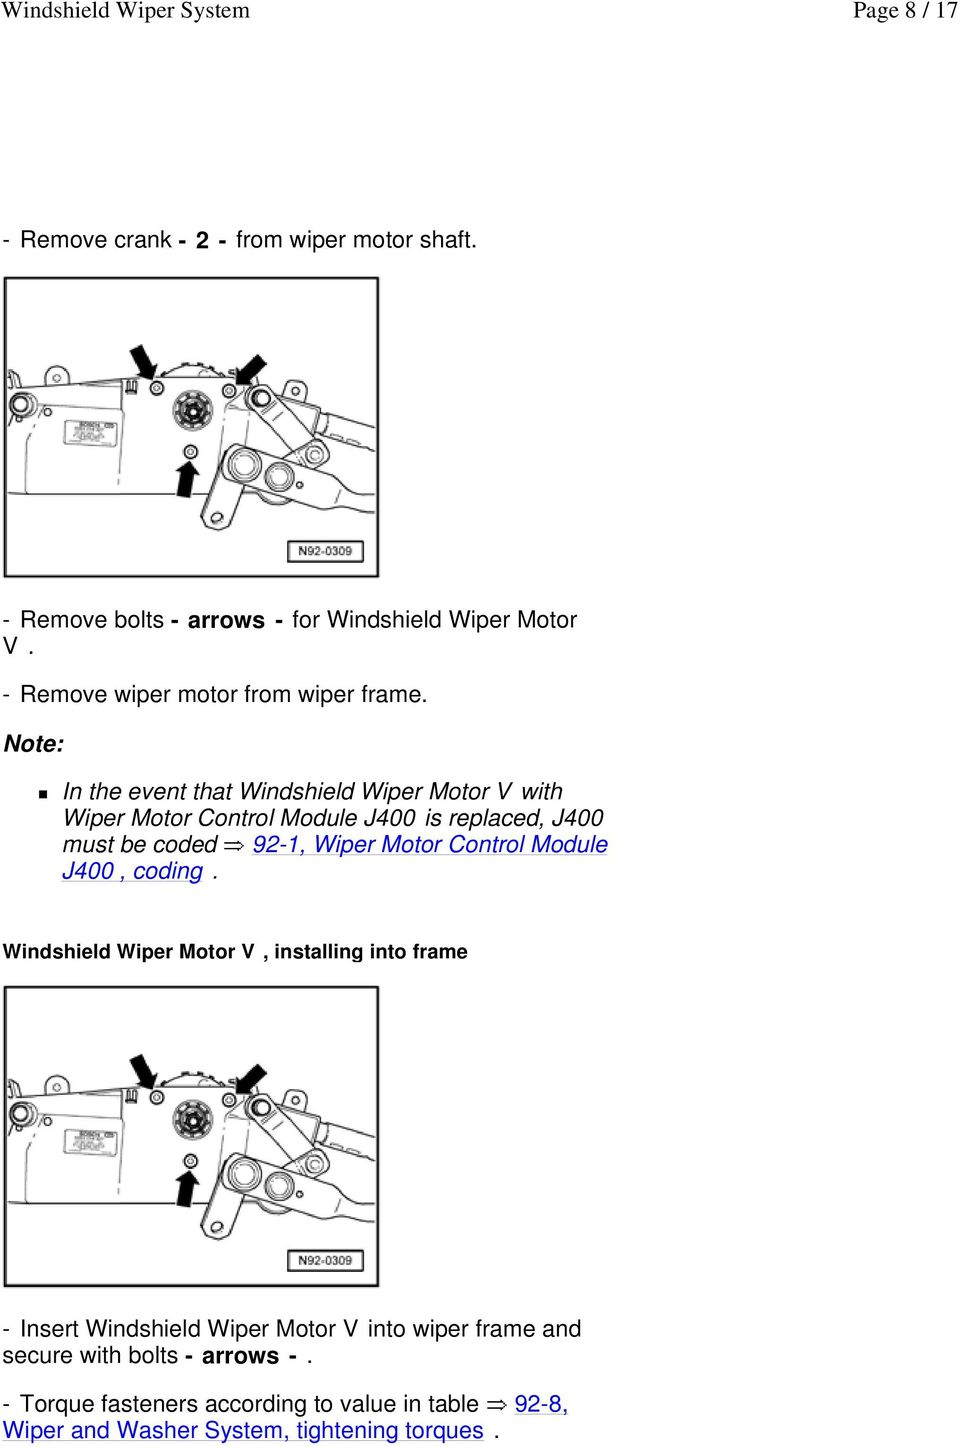 medium resolution of in the event that windshield wiper motor v with wiper motor control module j400 is replaced